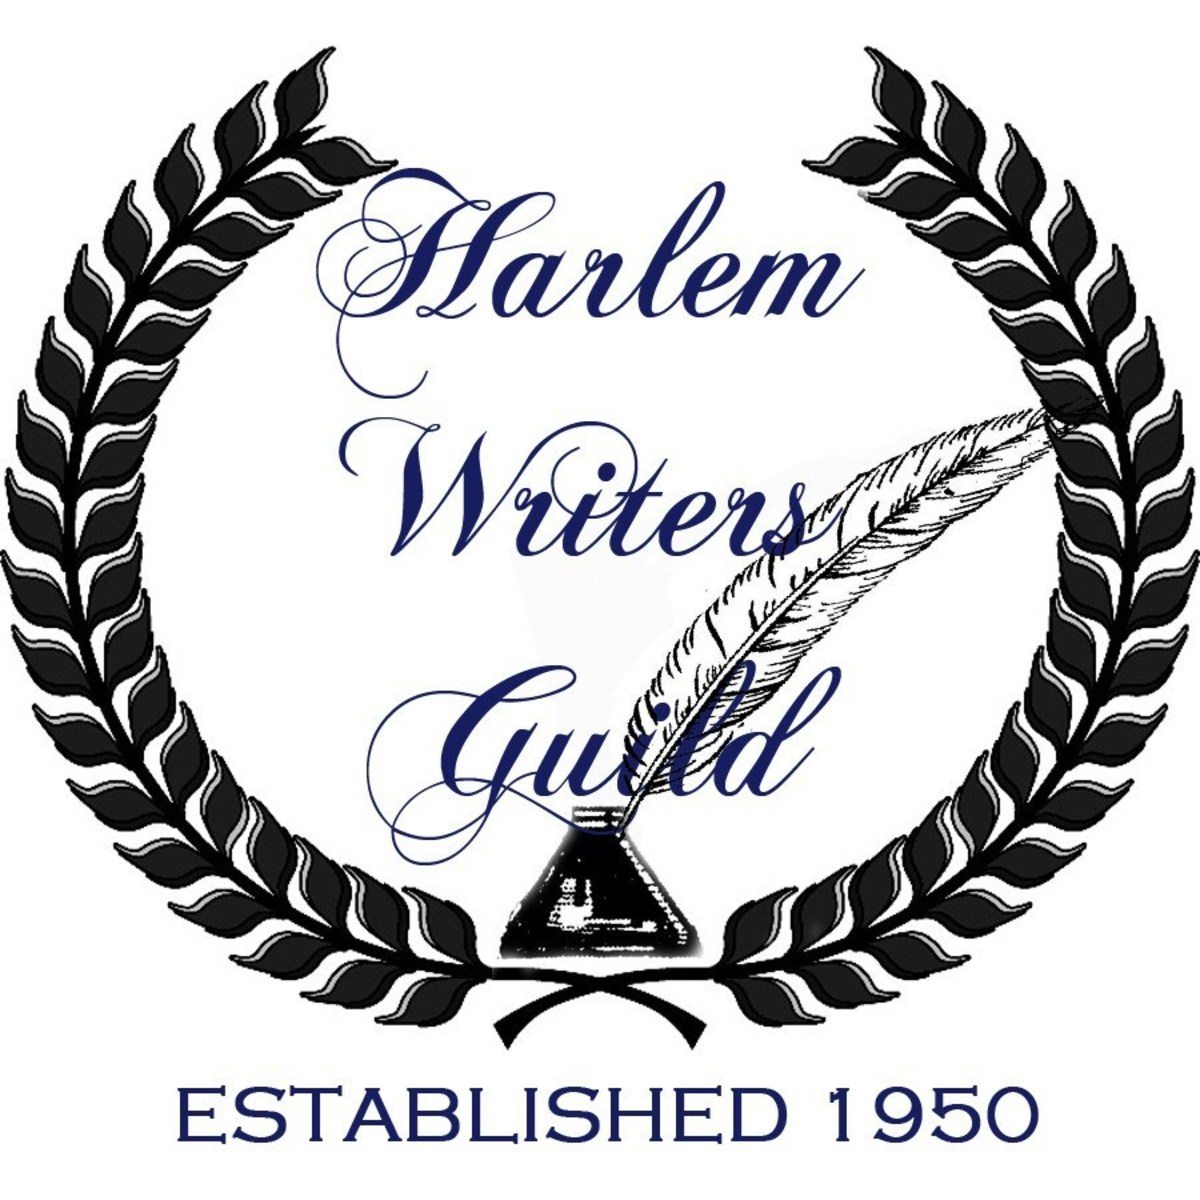 One of the Harlem World Magazine partners for the 2020 Summit is the Harlem Writers Guild.